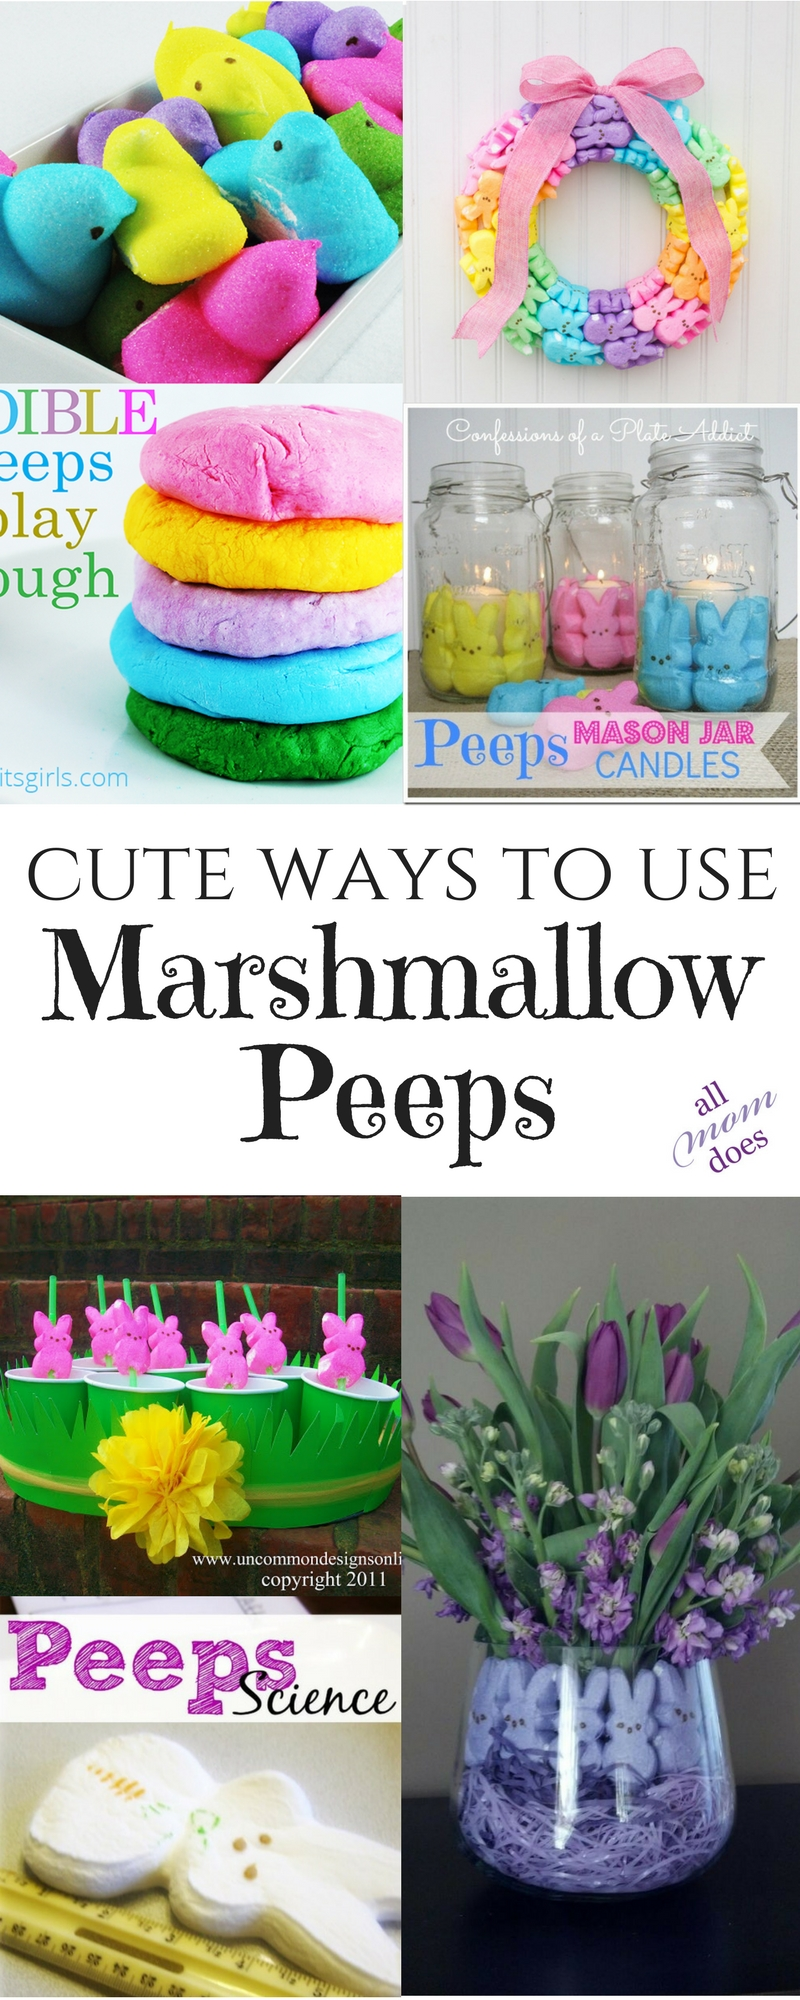 Cute ideas for marshmallow peeps. Spring and Easter craft and decor ideas!